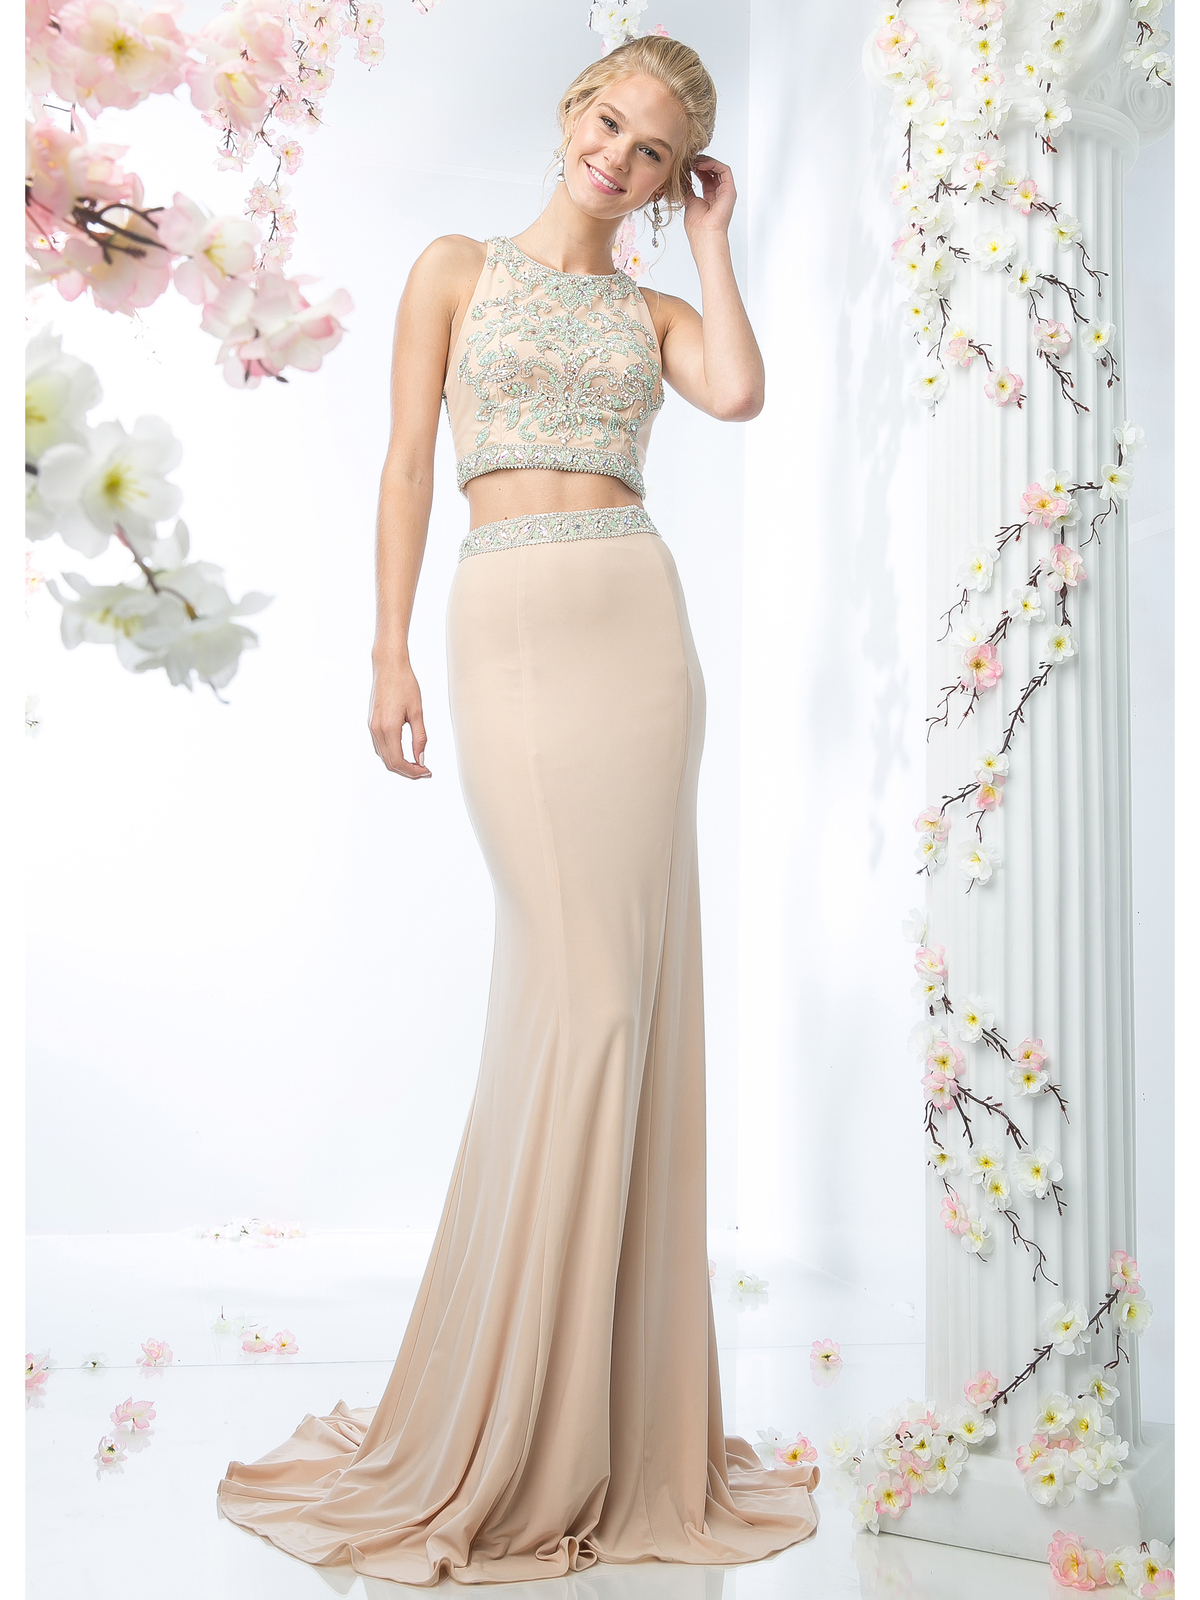 Two Piece Prom Dress with Train | Sung Boutique L.A.